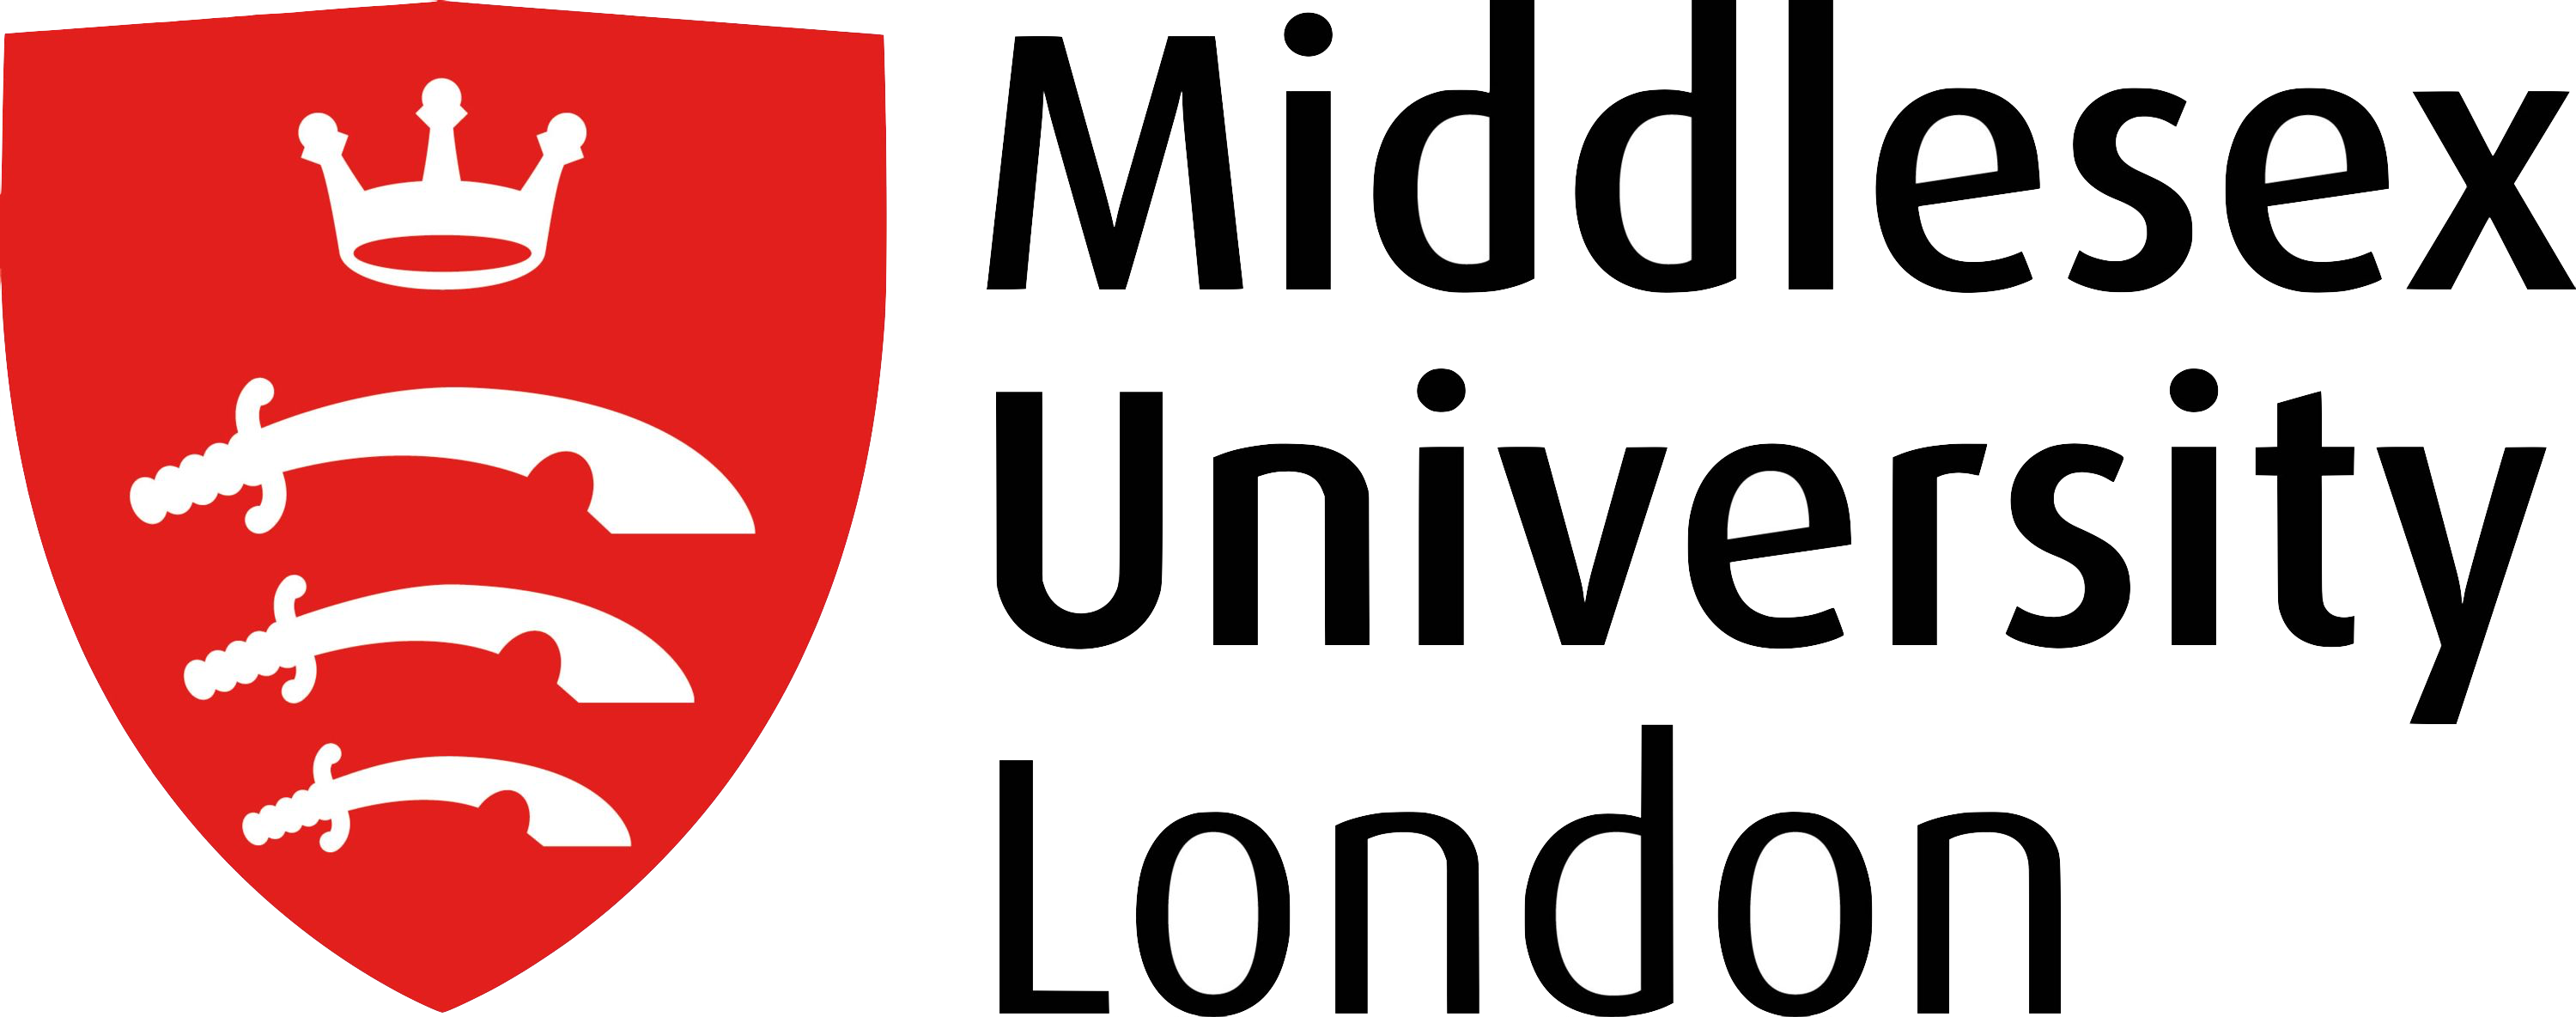 Solidworks download for Middlesex university students